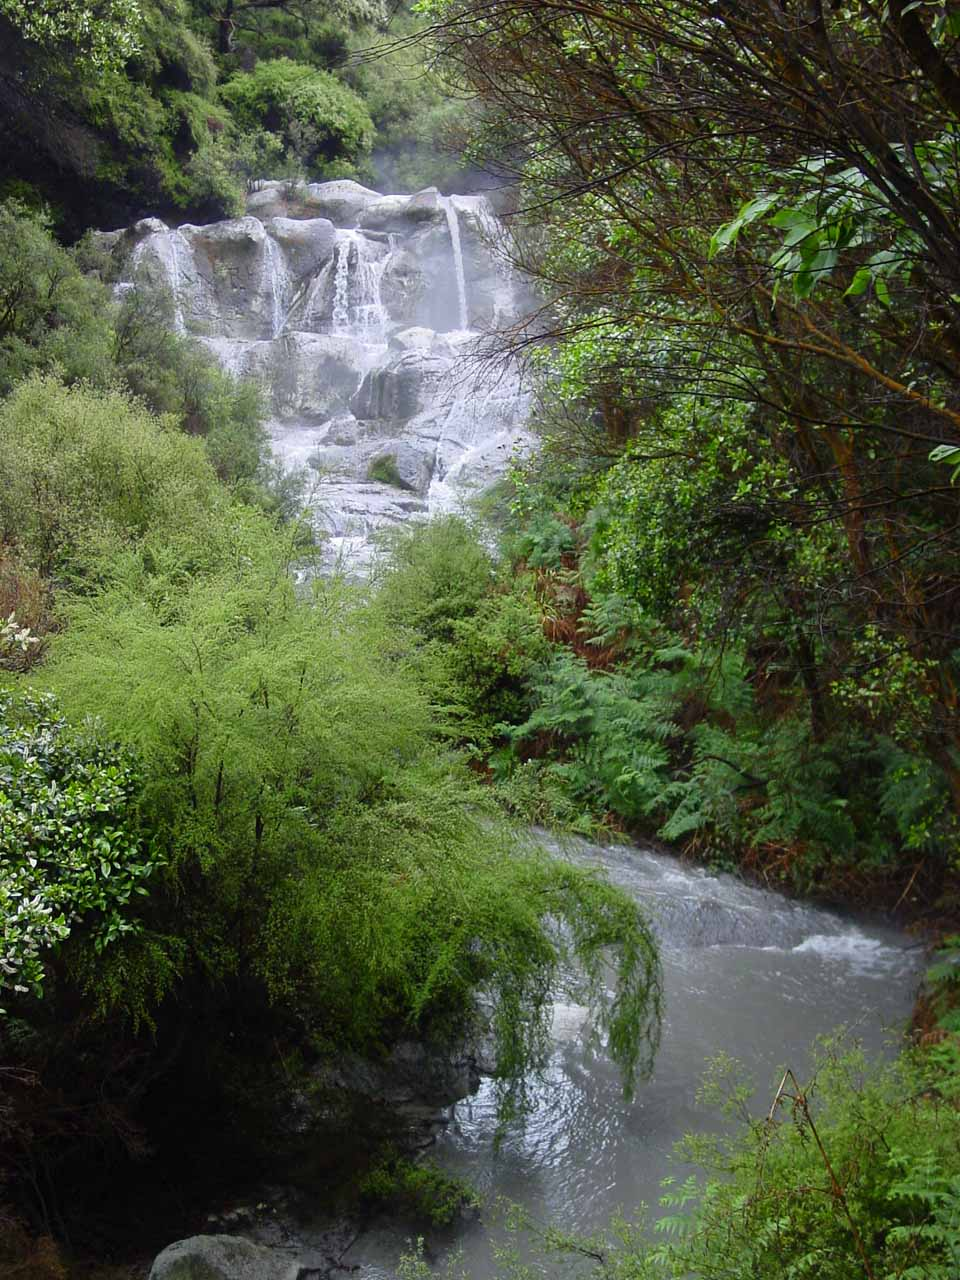 Closer look at Kakahi Falls and the stream cutting between the bush